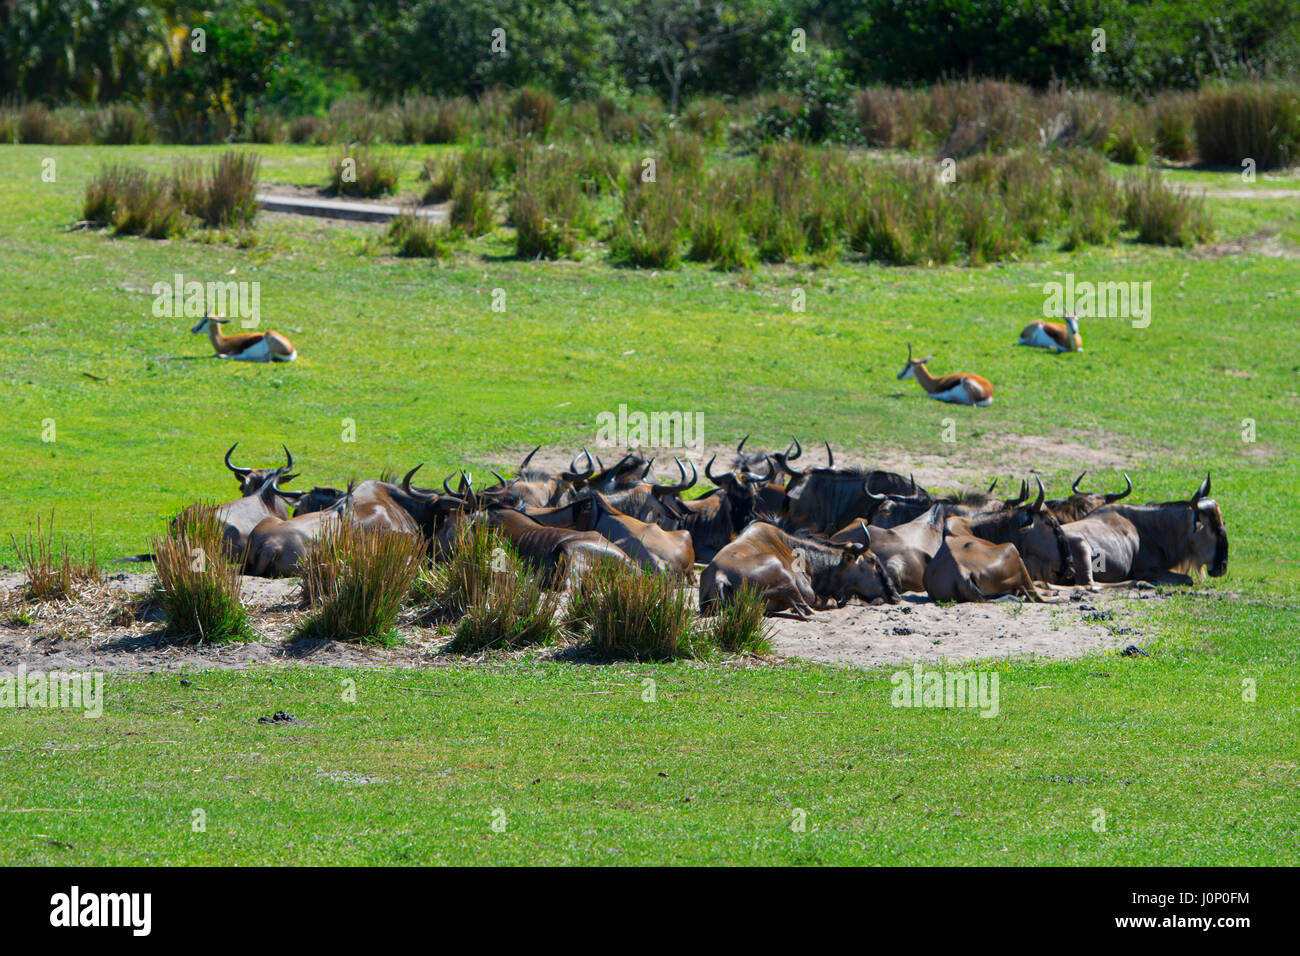 Animals, Wildebeest at Disney Animal Kingdom, Disney World, Orlando Florida - Stock Image